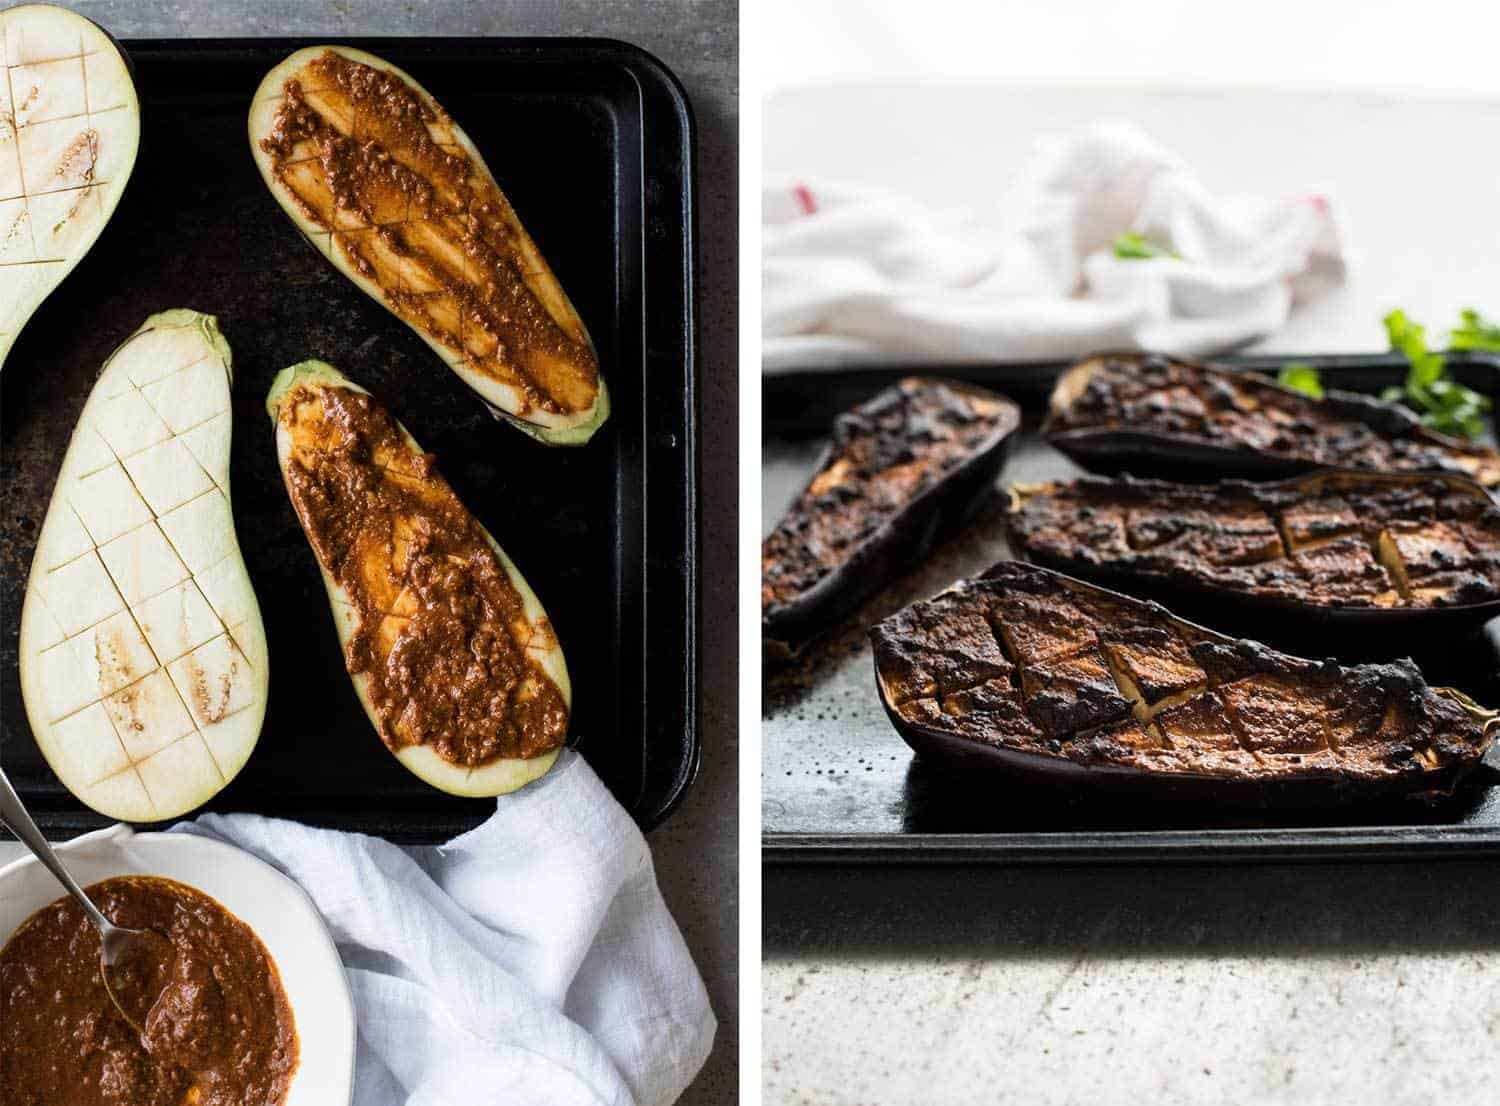 Moroccan Baked Eggplant with Beef smeared with chermoula before baking, and result after baking